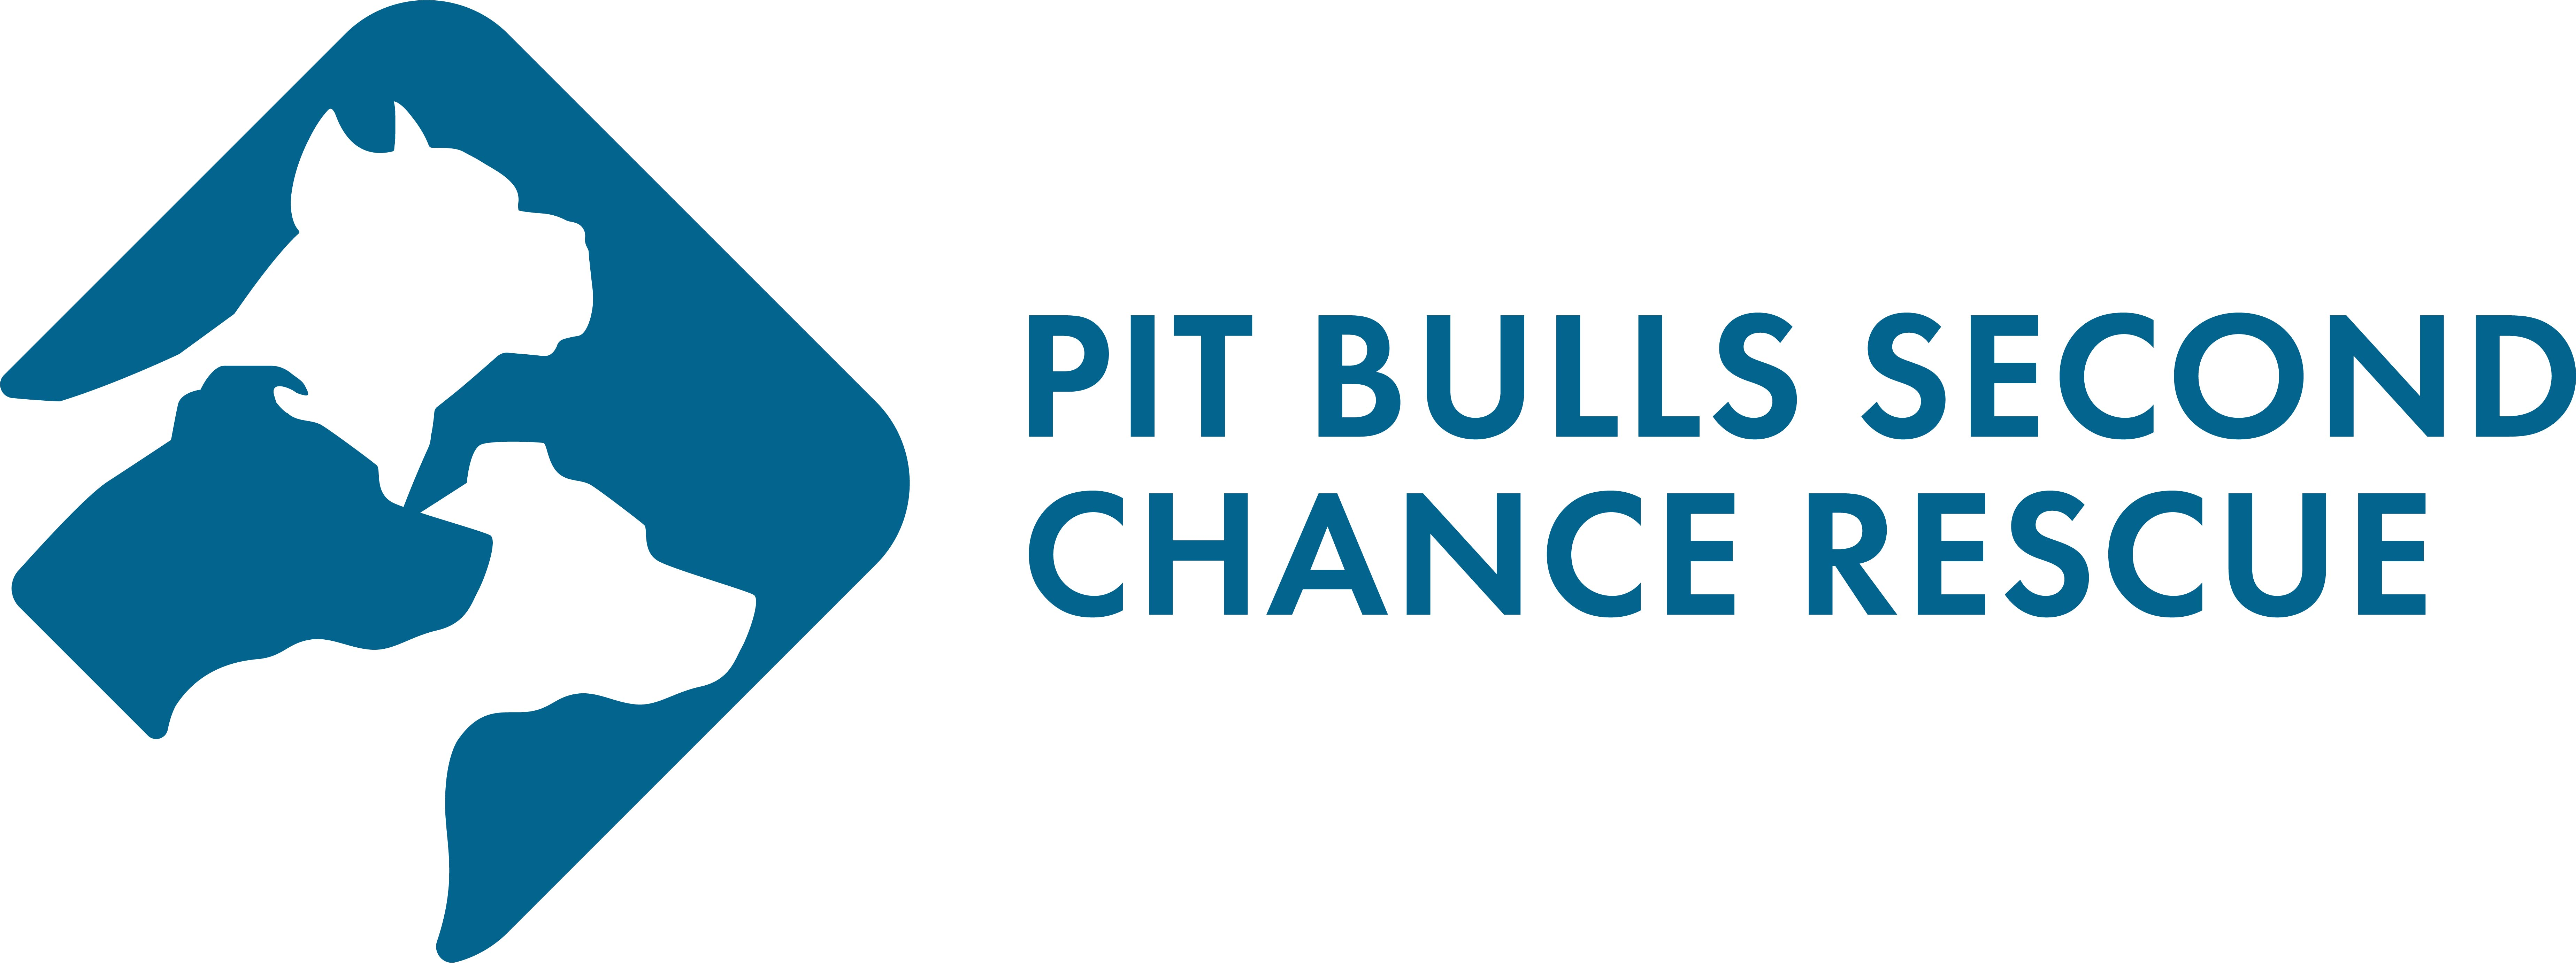 Pit Bull Second Chance Rescue